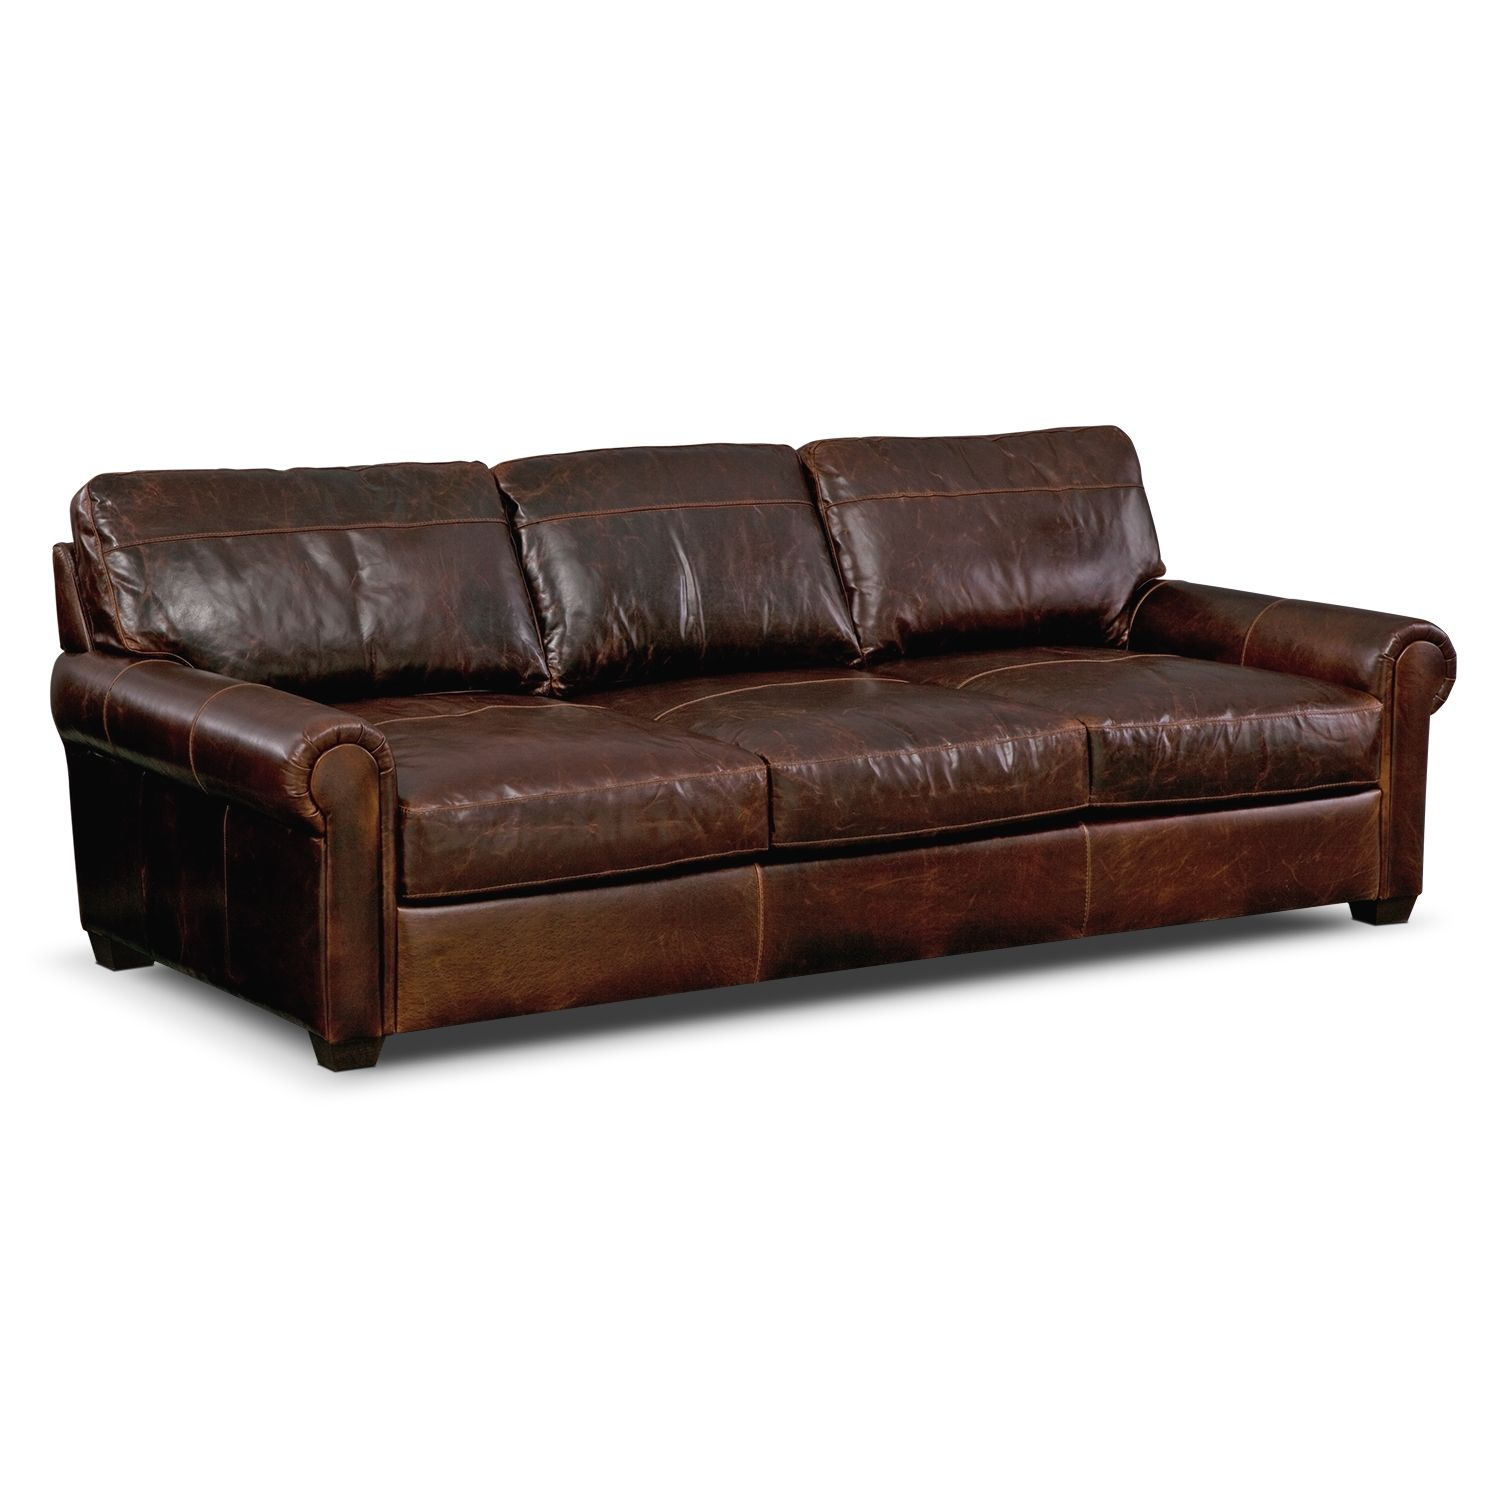 Leather Living Room Chairs Burnham Leather Sofa Value City Furniture Knock Off Restoration